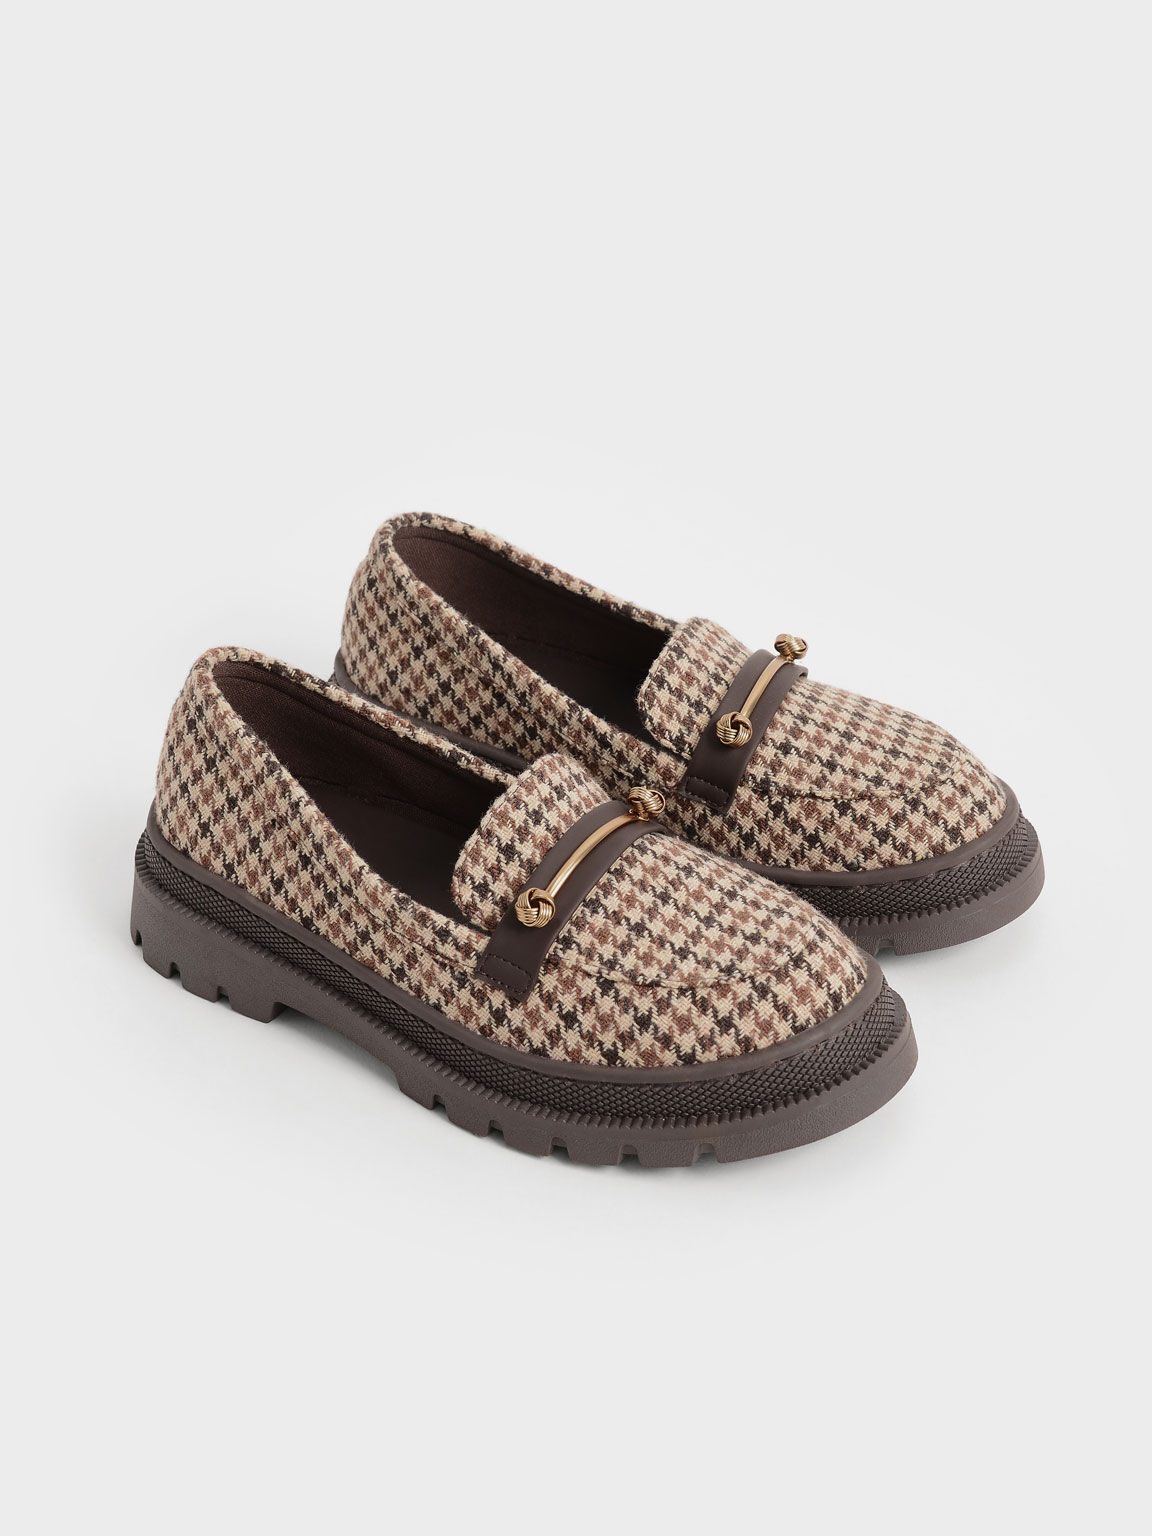 Girls' Houndstooth-Print Metallic Accent Penny Loafers, Multi, hi-res